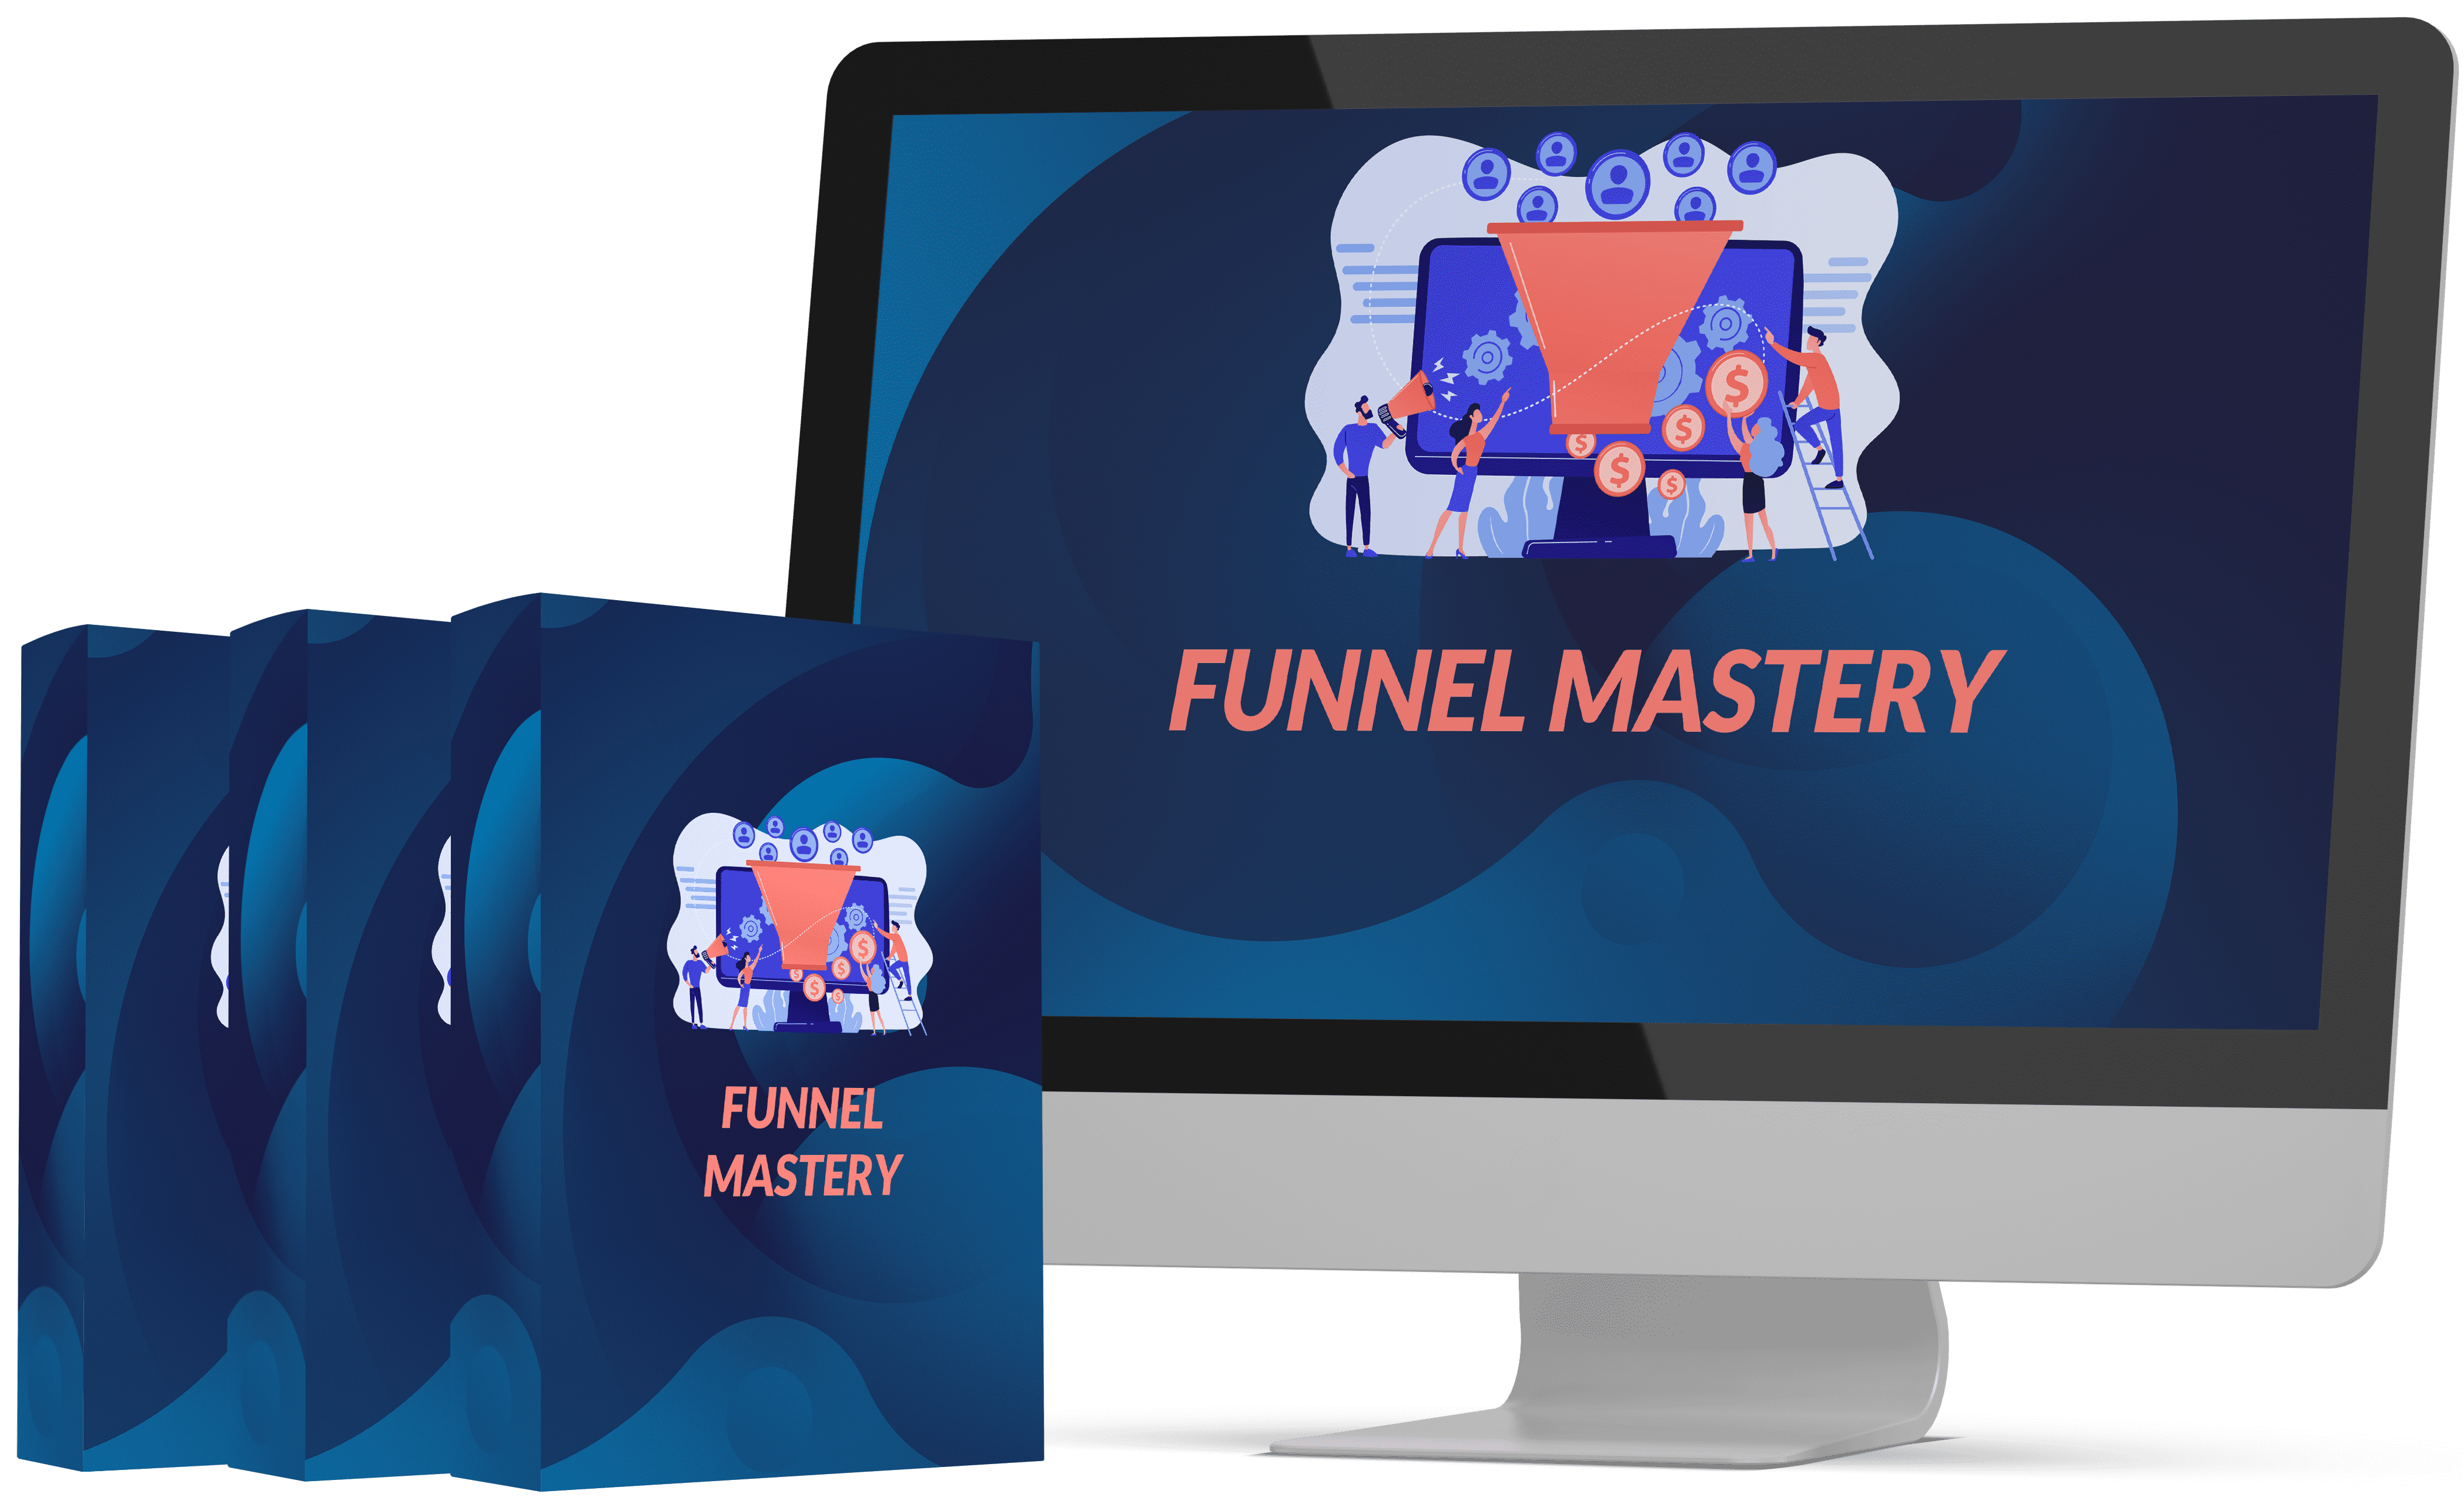 Funnel Mastery